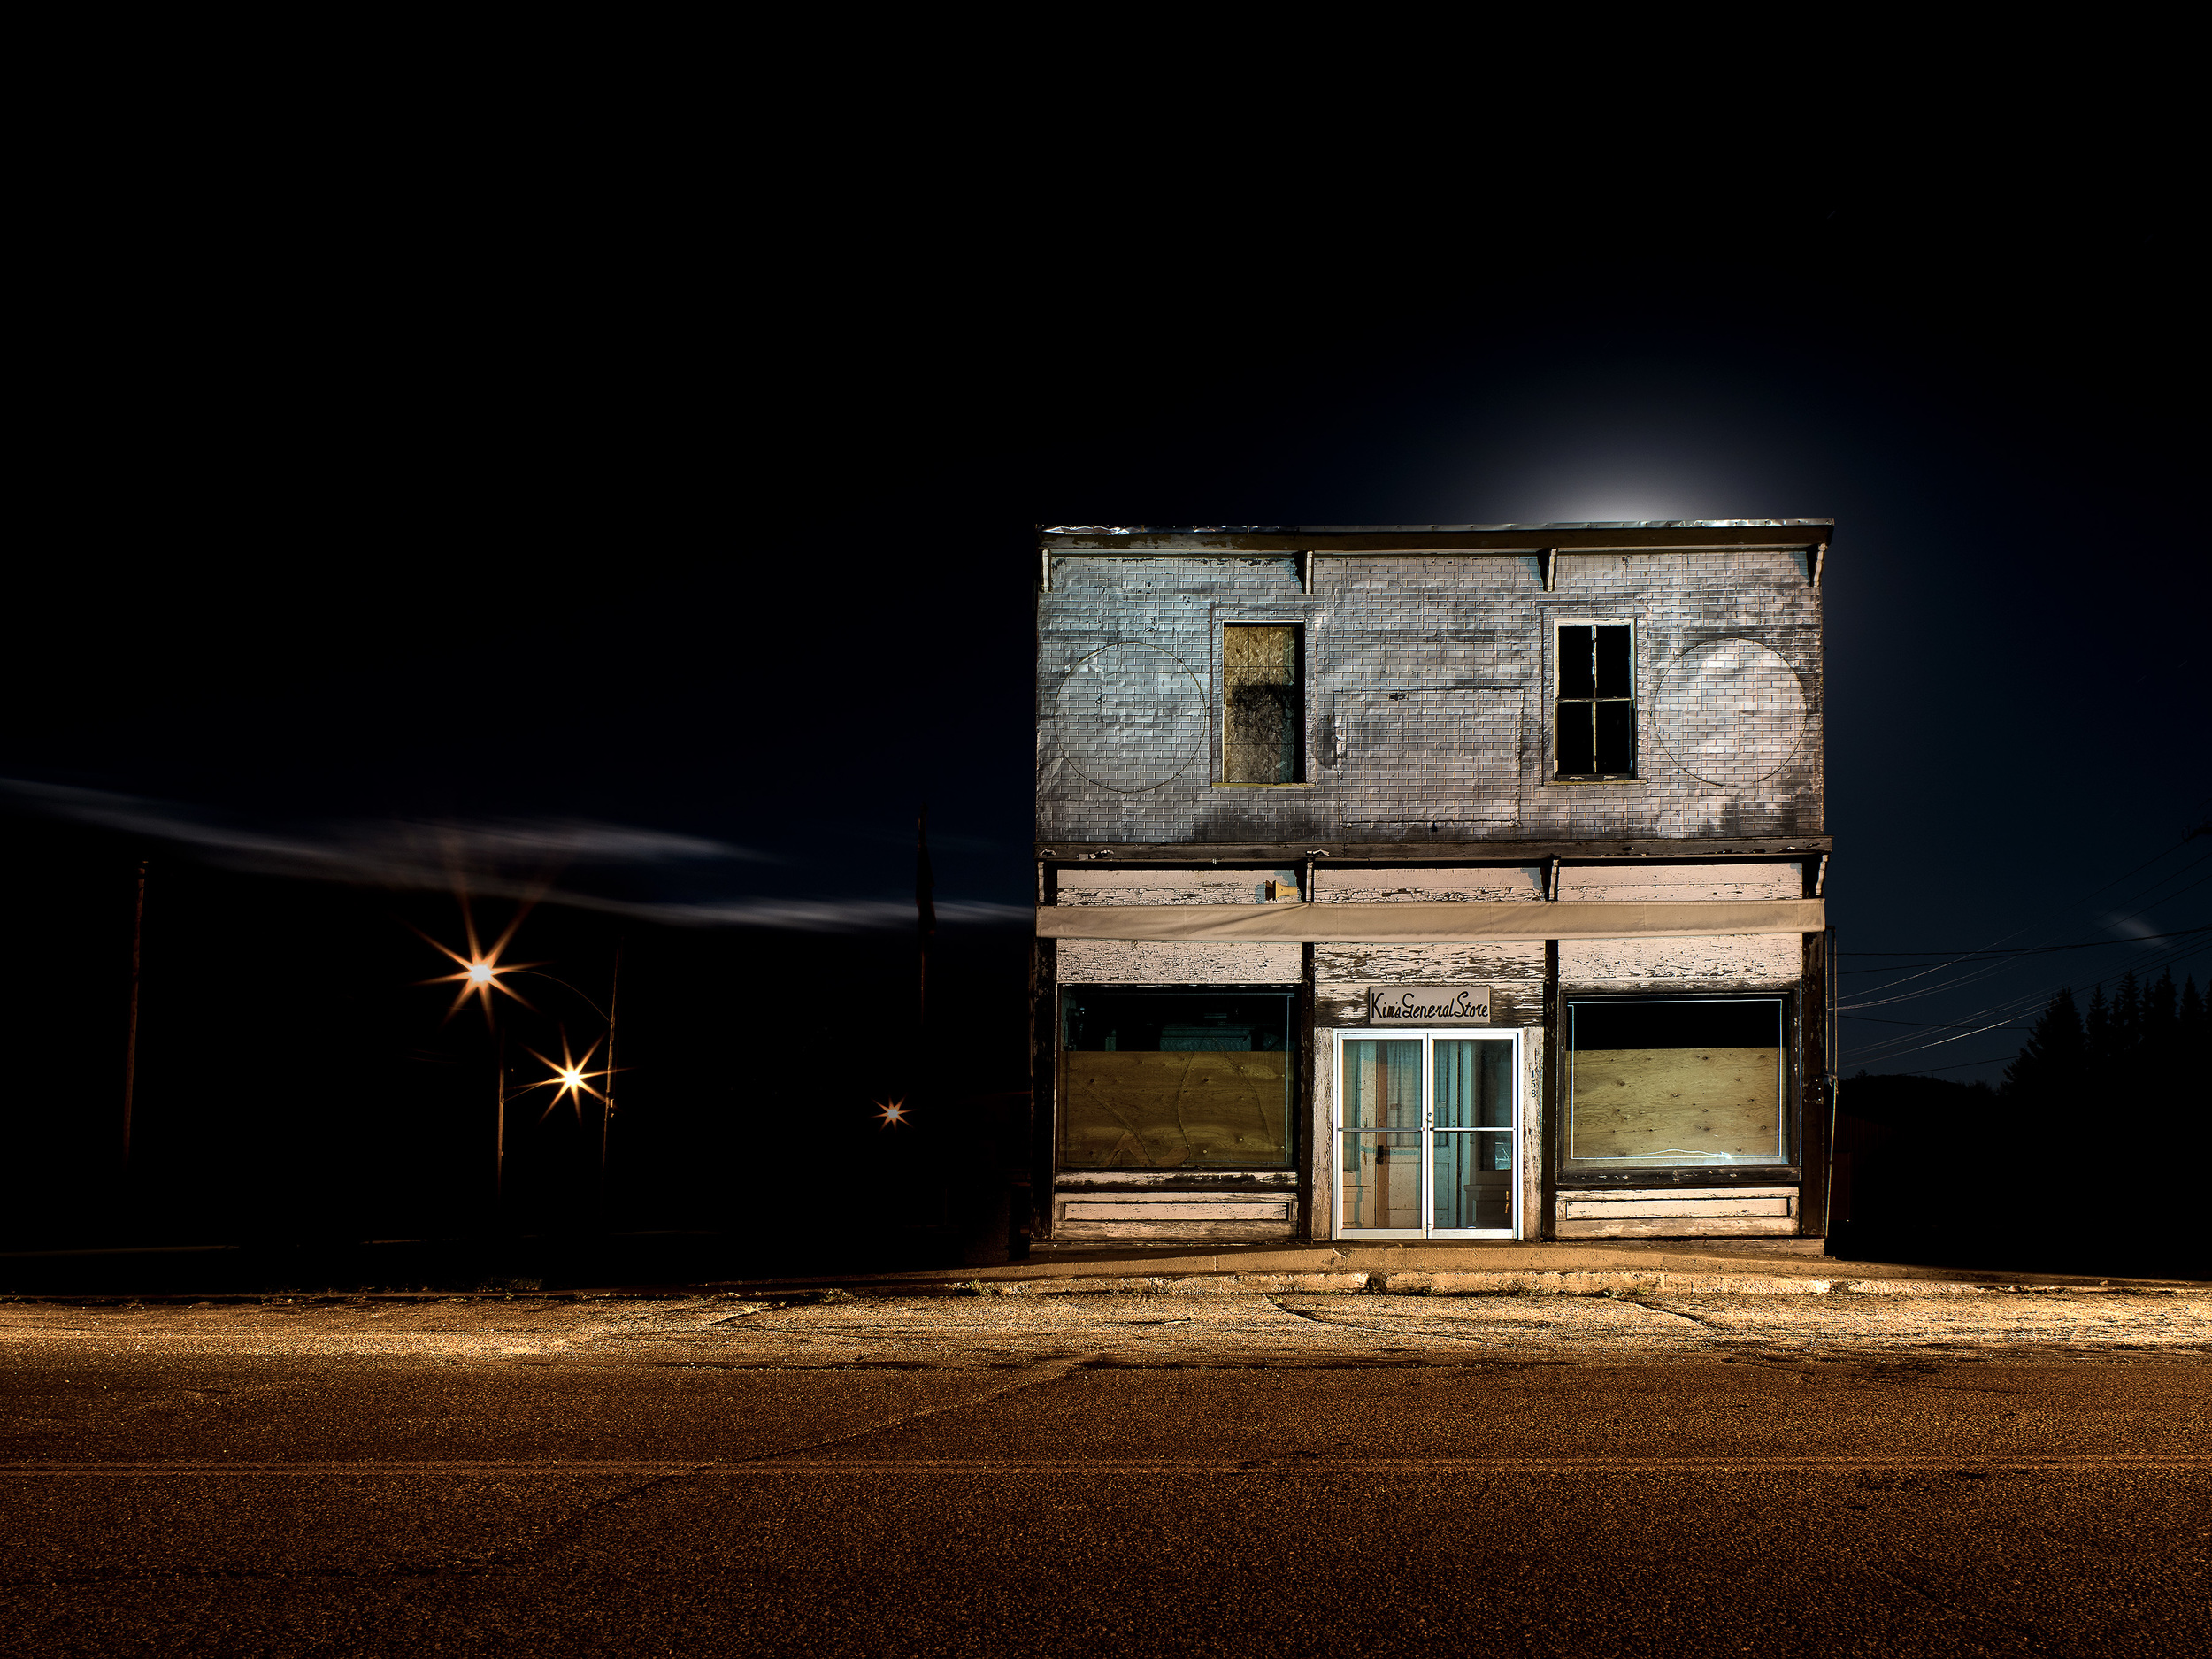 KAB-009, Kevin Boyle, Kim's General Store, Inkjet Photograph on Panel, 36 x48, 2014, $4500